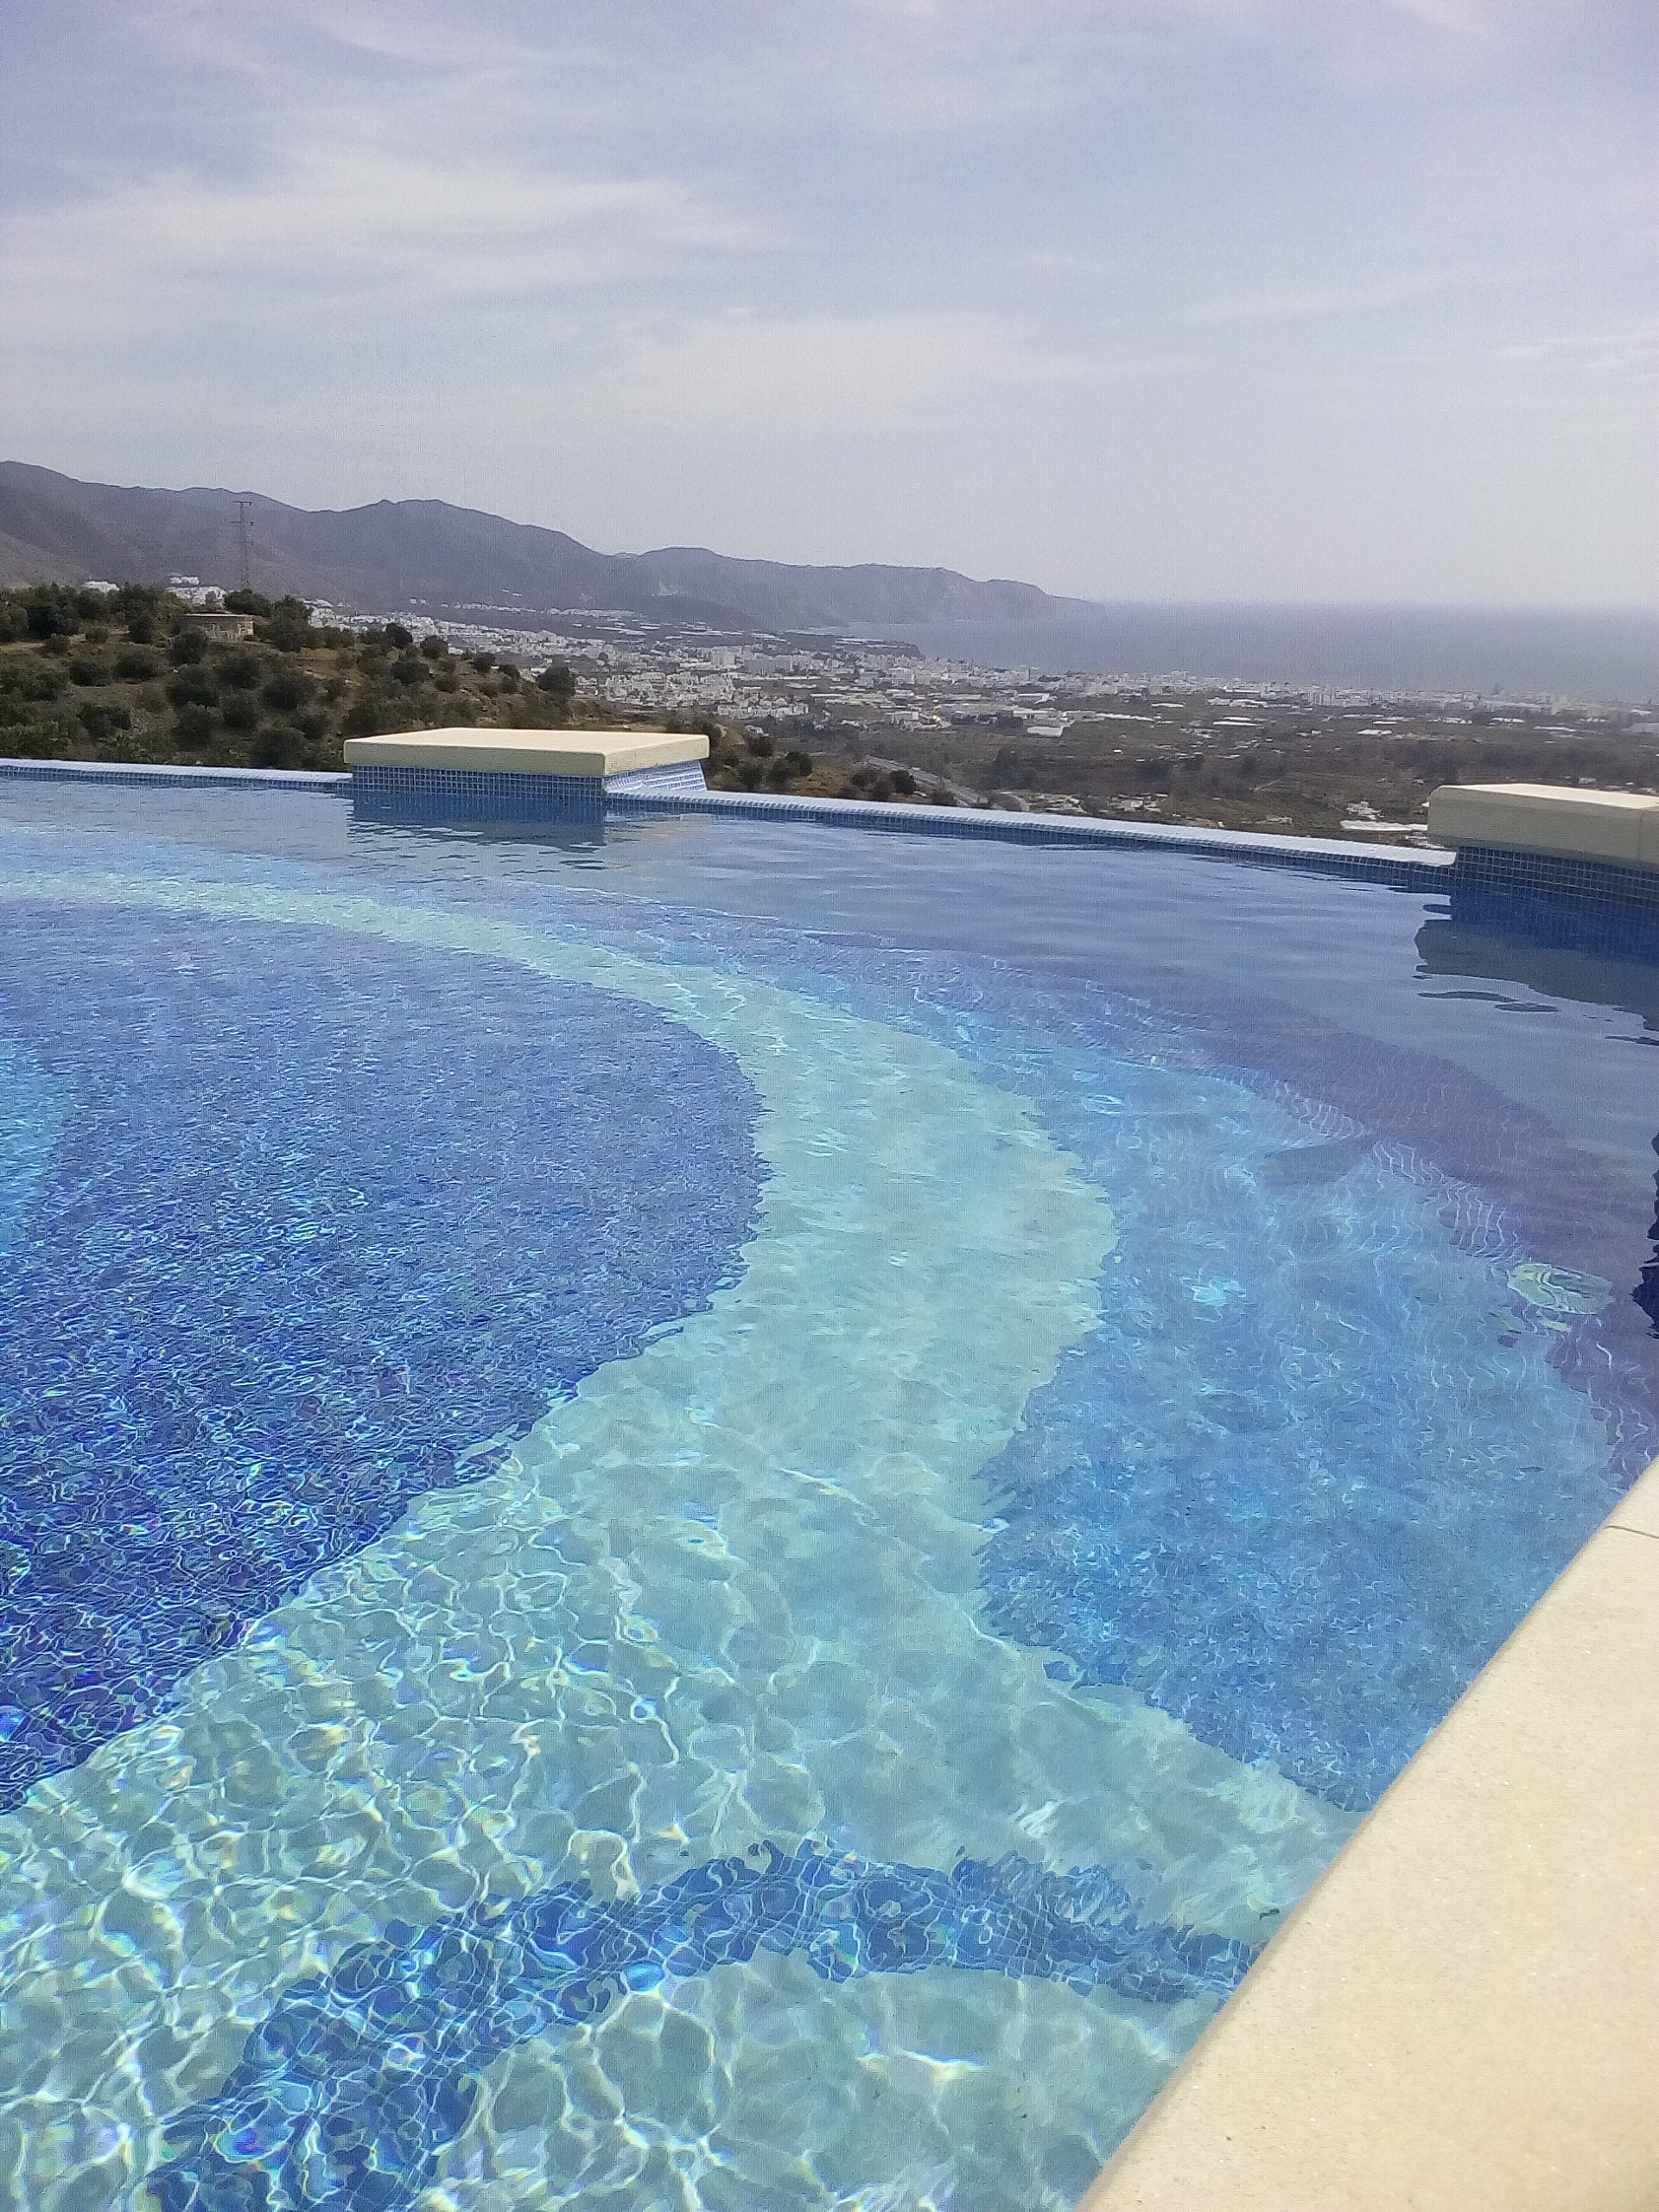 Infinity pool and vista of the Costa del Sol